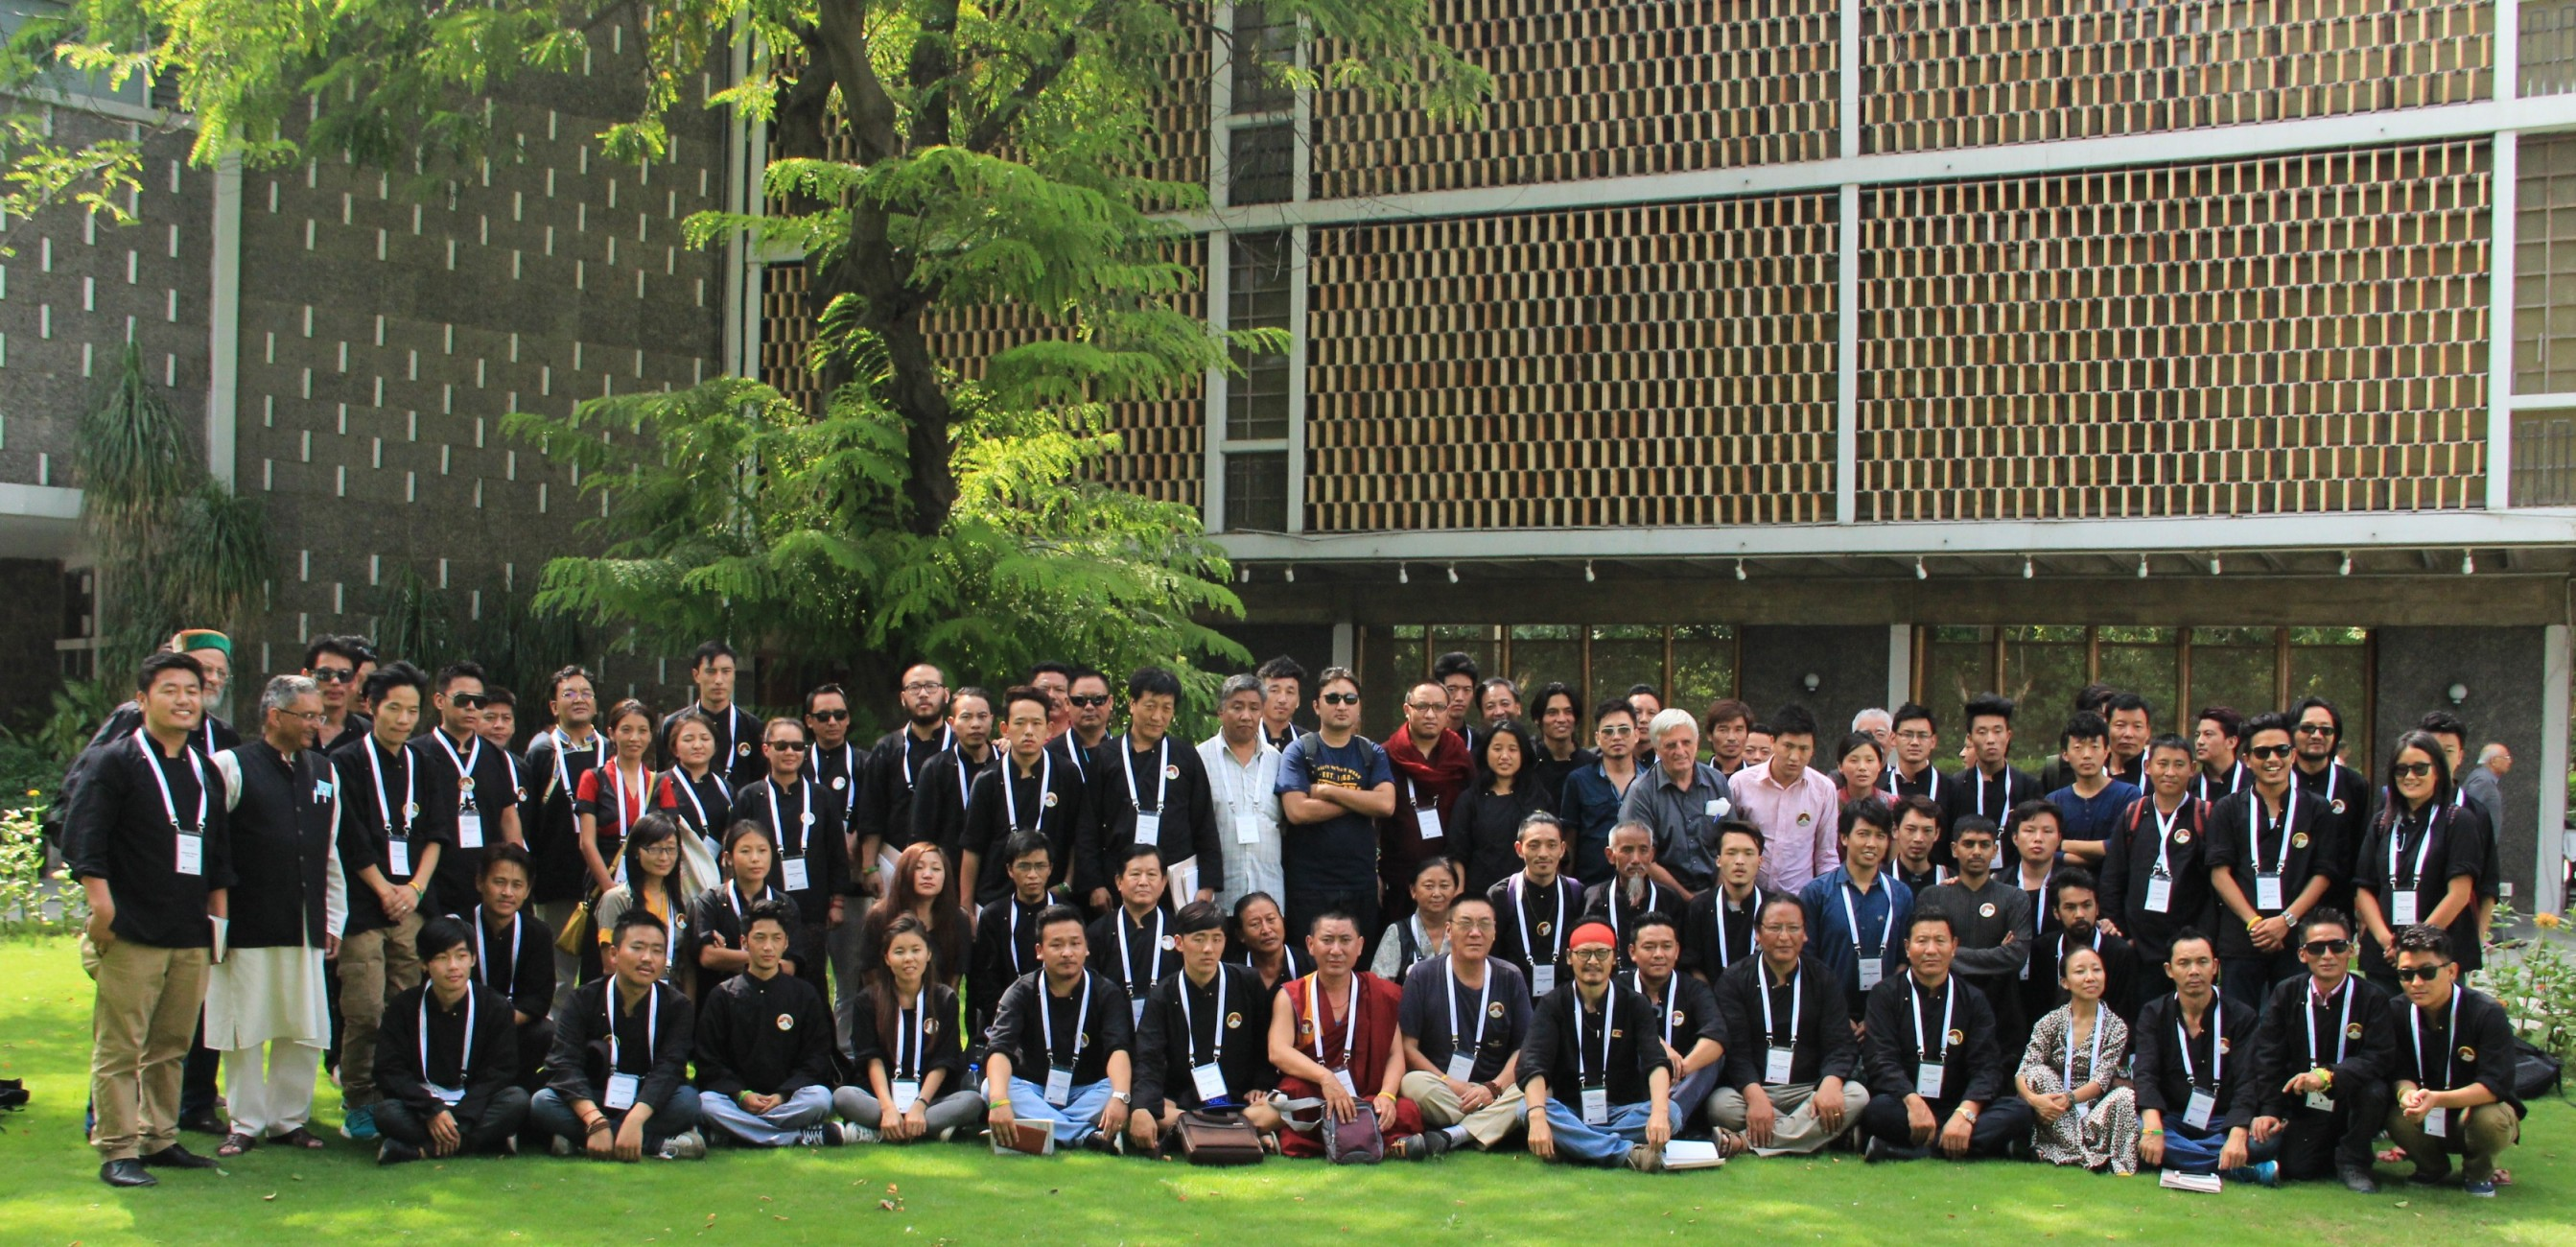 International Rangzen Conference held at the India International Centre from 23-24 May 2015 at New Delhi. (Photo courtesy: International Rangzen Network)